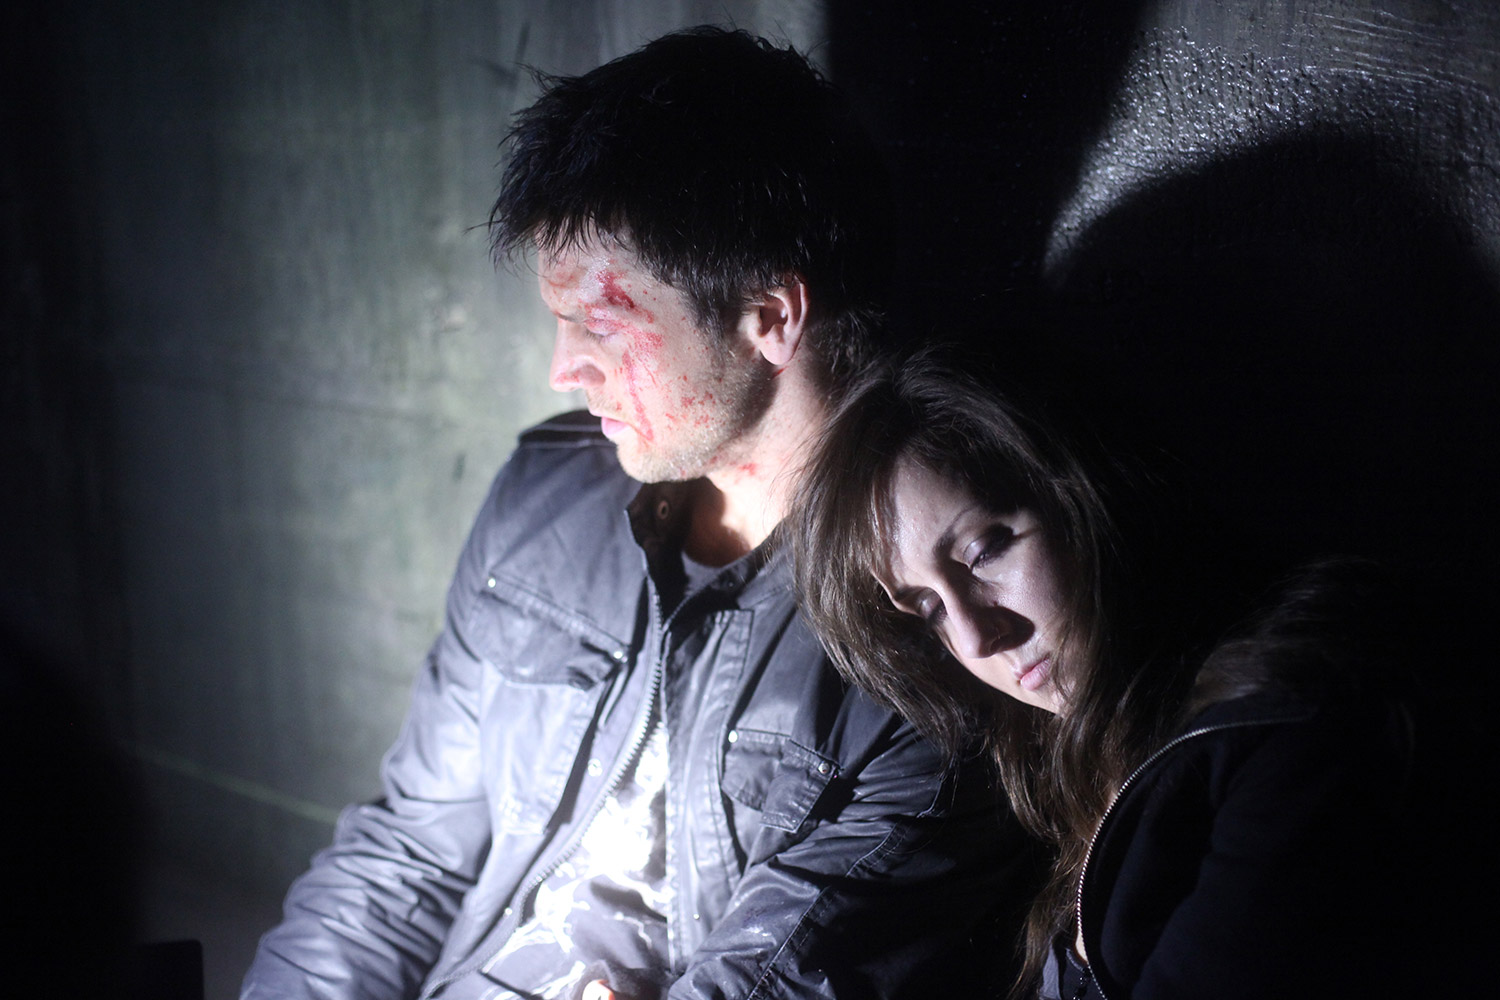 Canadian Horror Films - Grave Encounters, exhausted characters